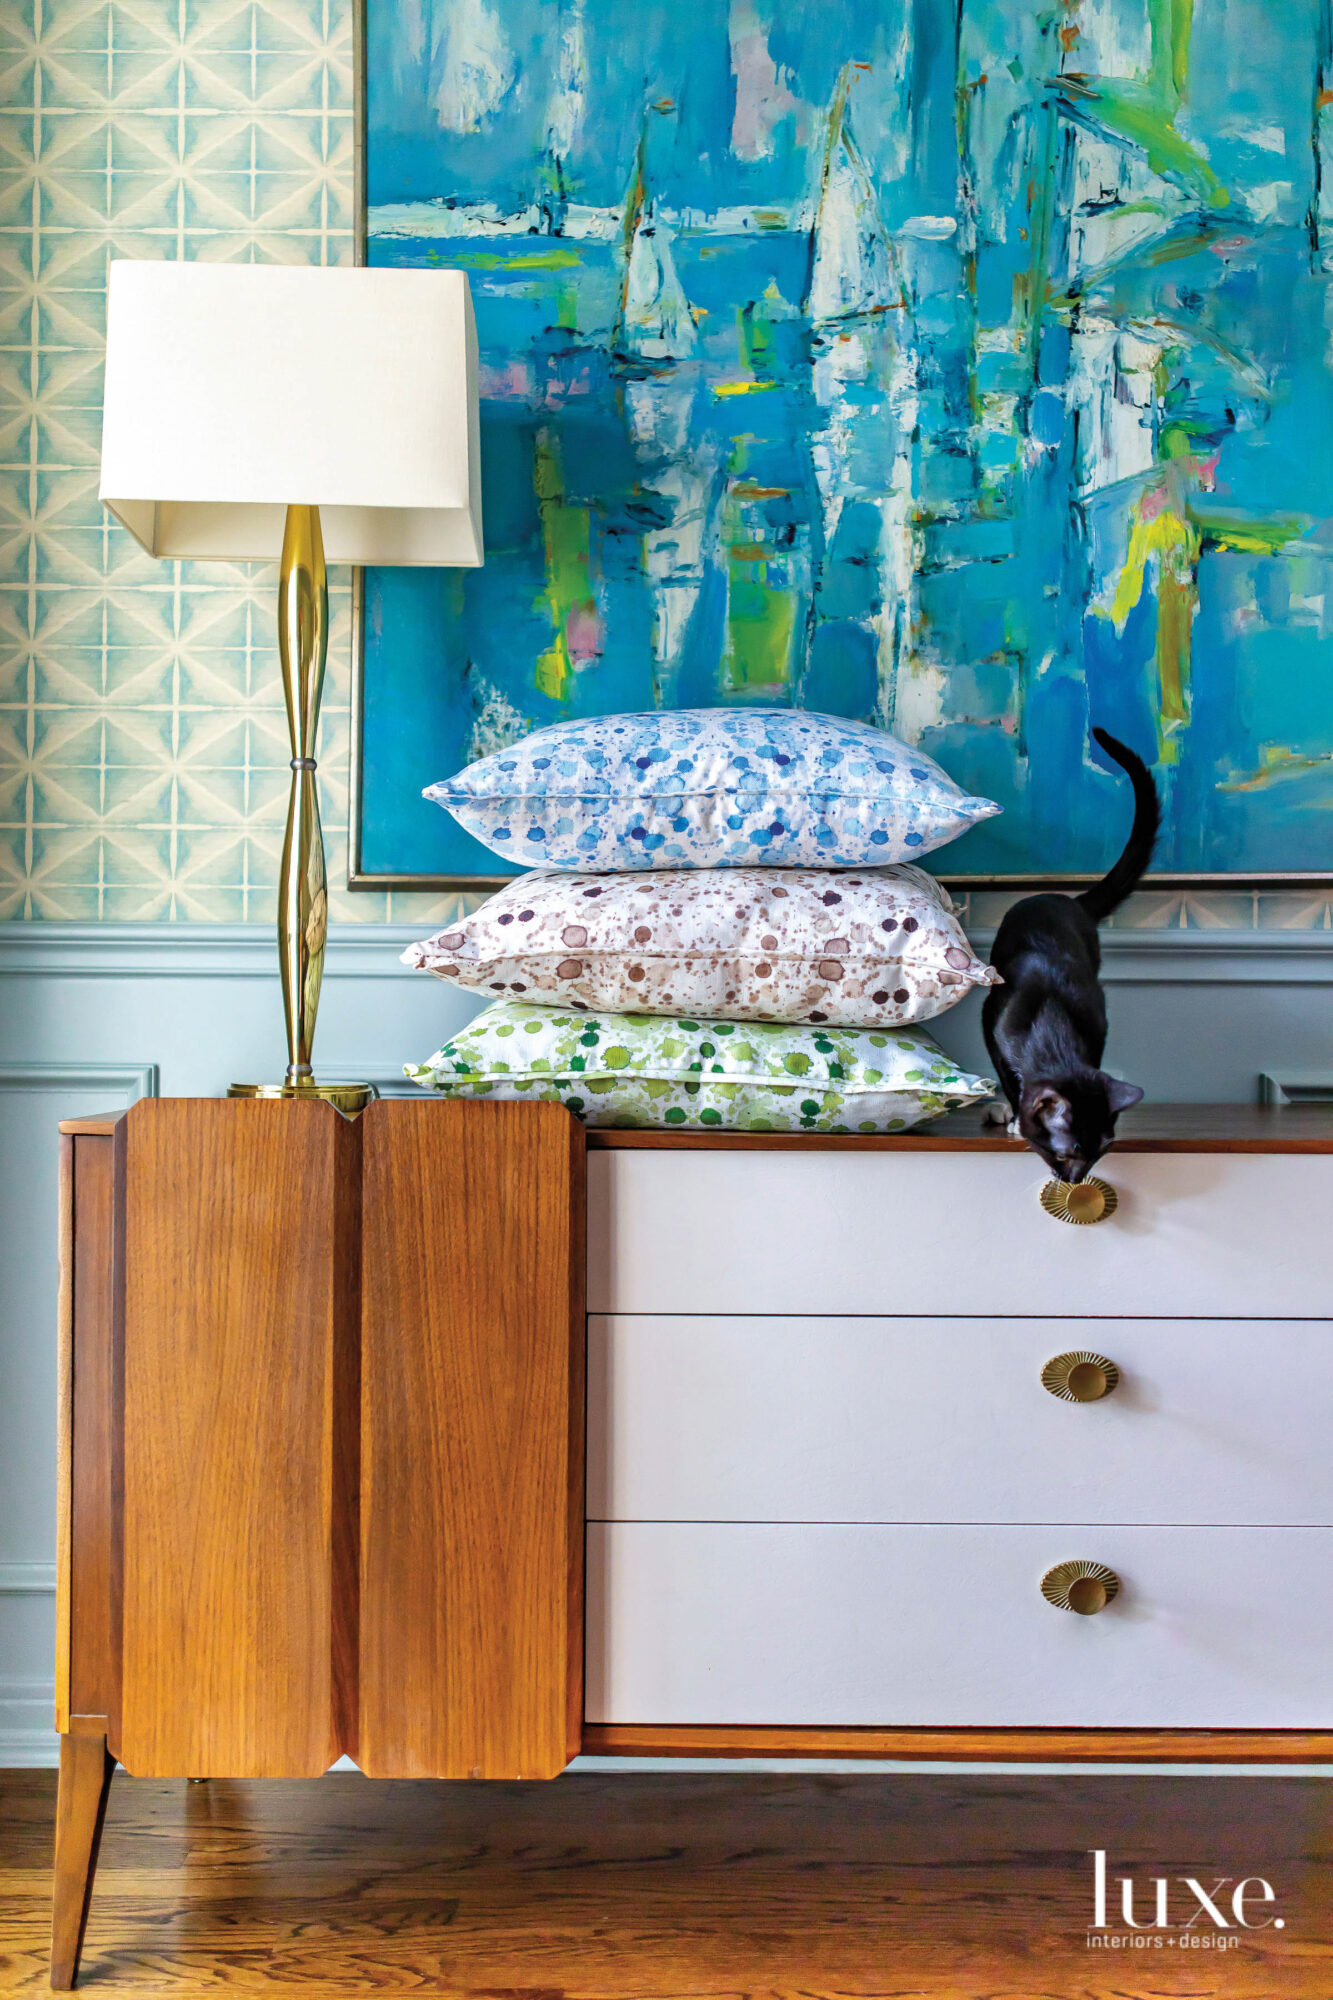 Tri-colored pillows are stacked on a dresser in front of a bright blue art piece